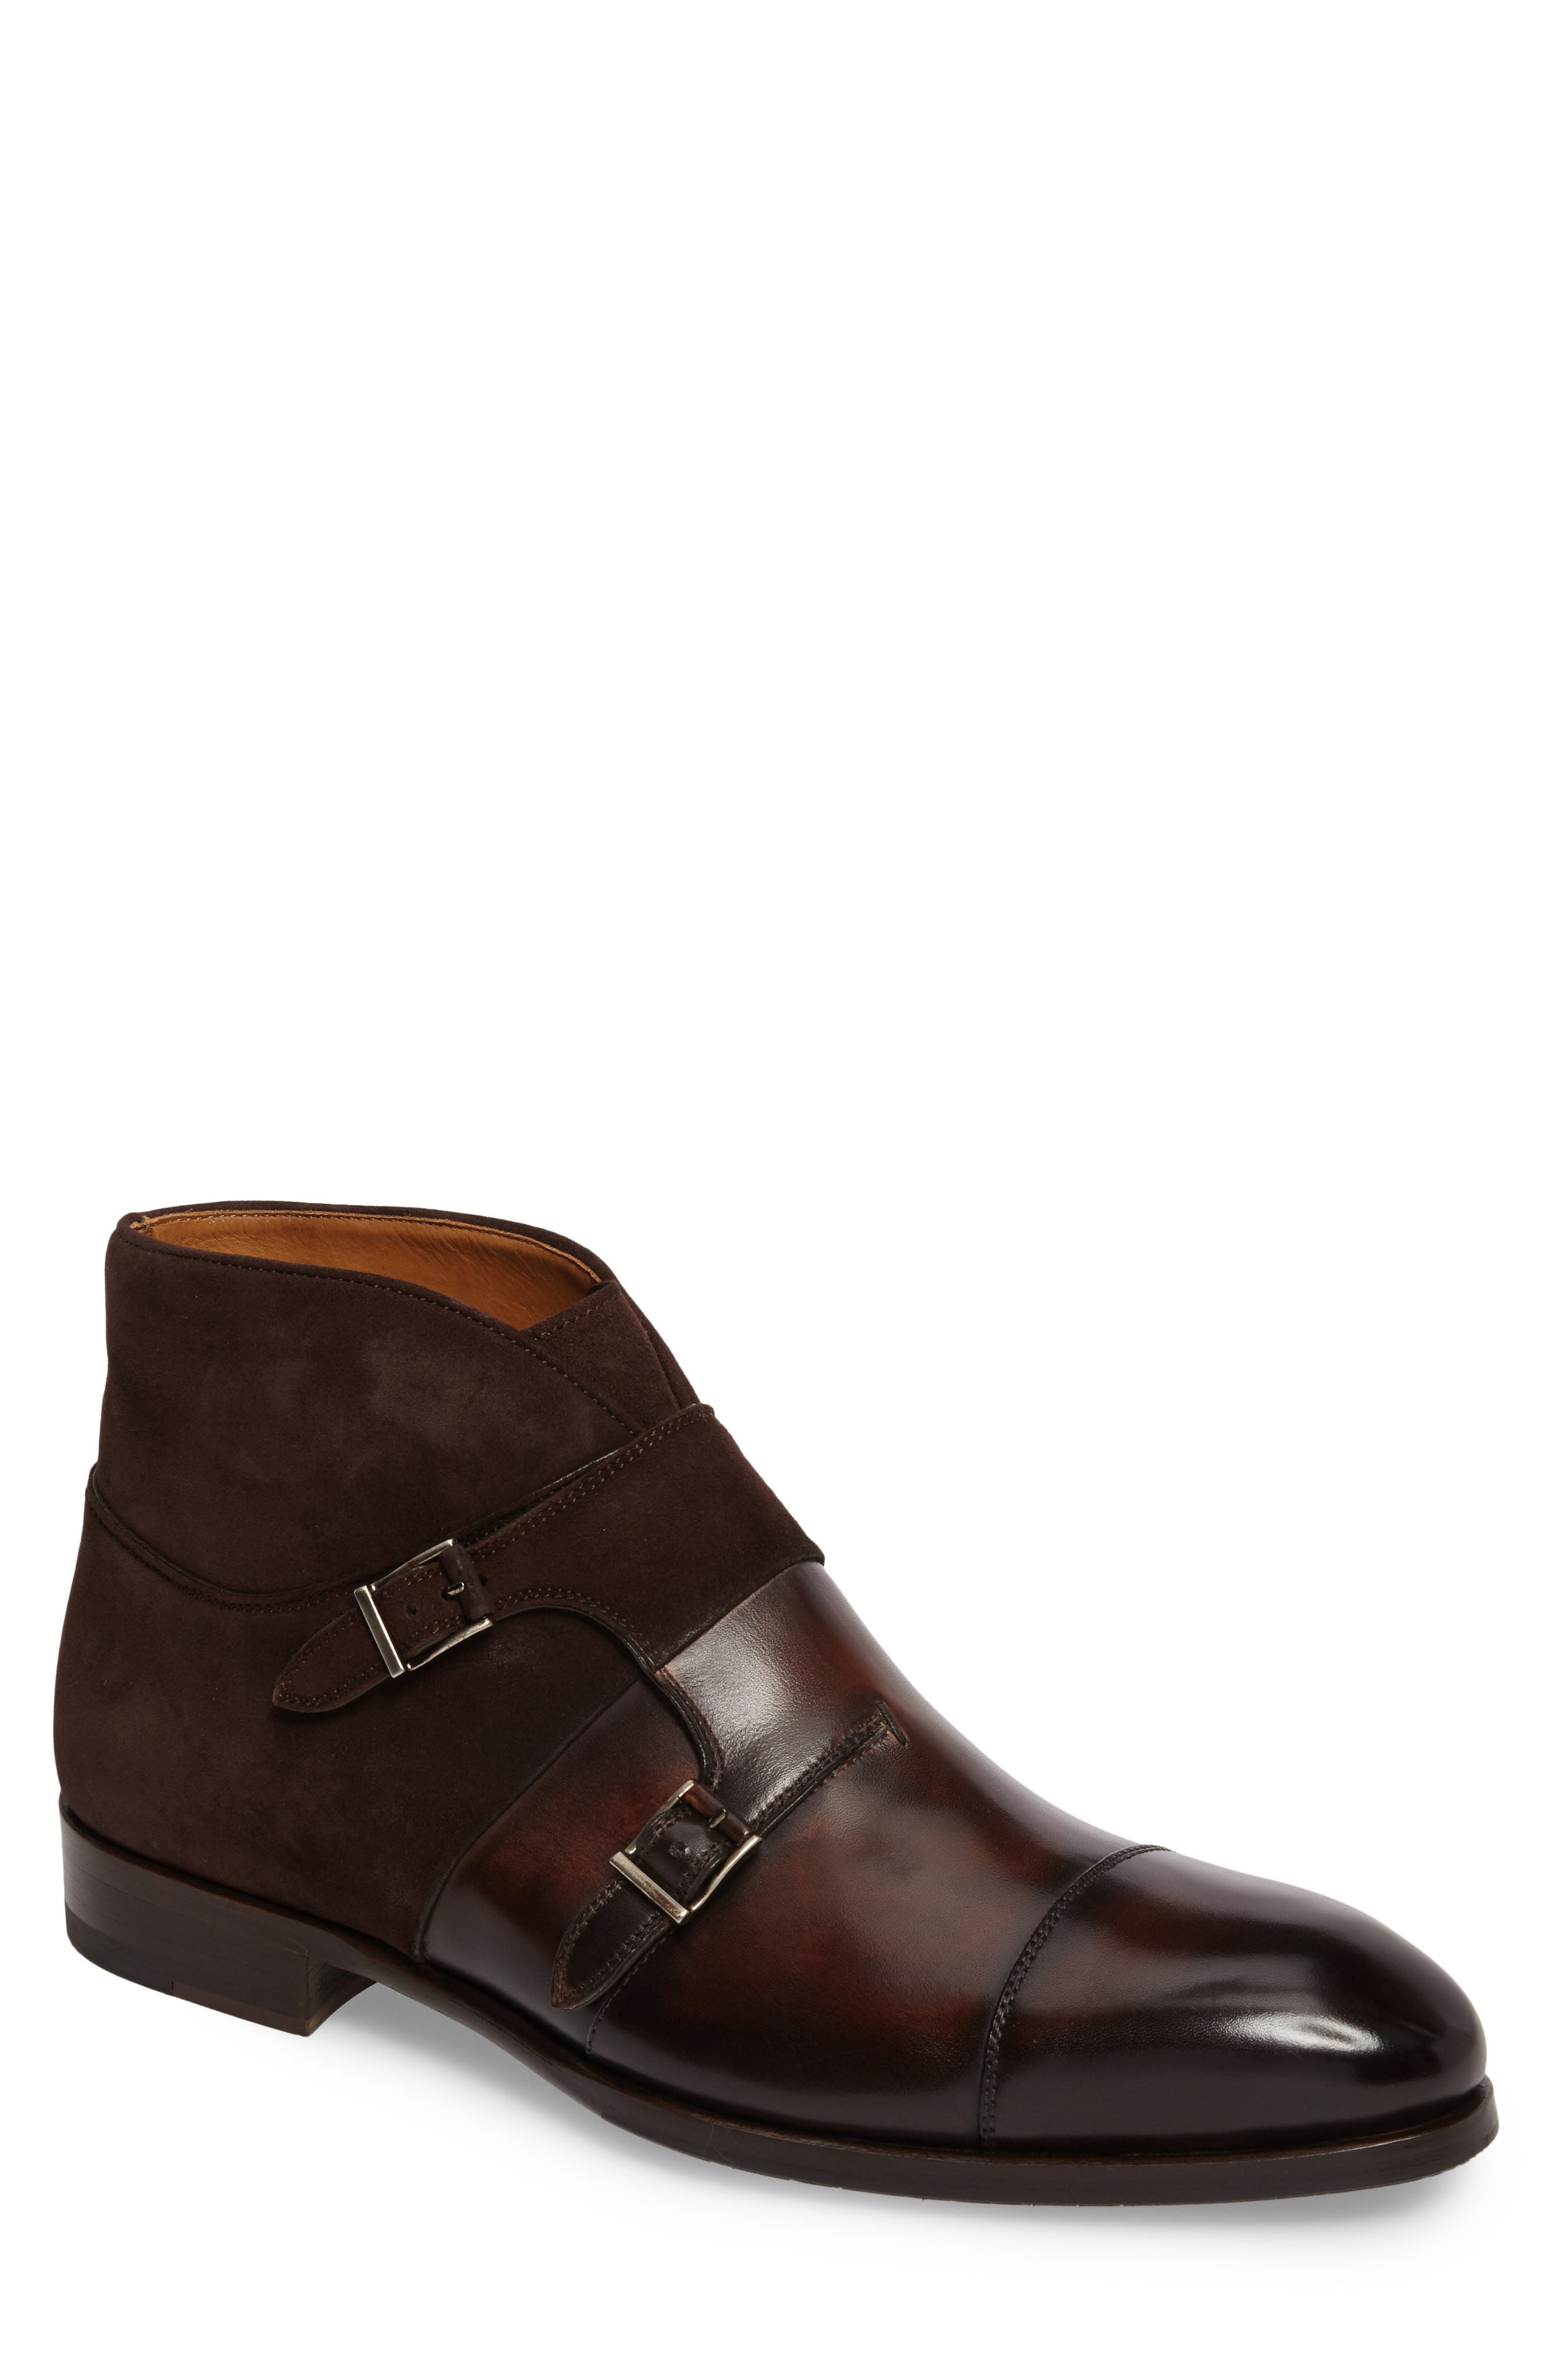 Main Image - Magnanni Octavian Double Monk Strap Boot (Men)